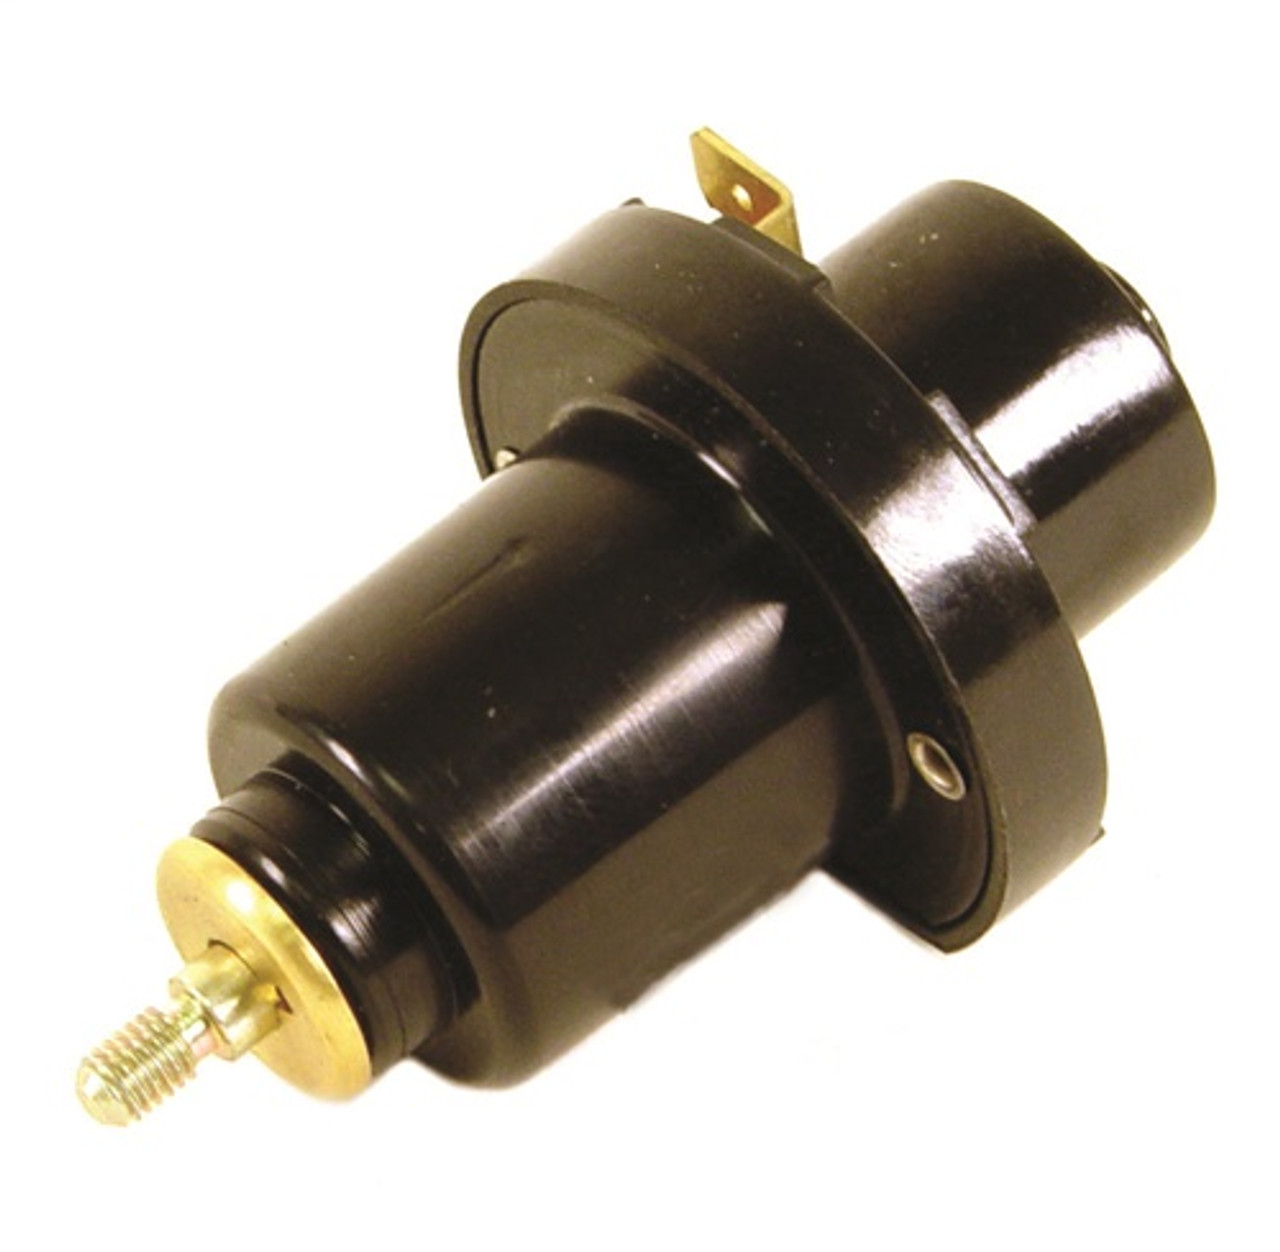 Headlight Switch, Fits Air Cooled VW Beetle 1958-67, EMPI 98-9421